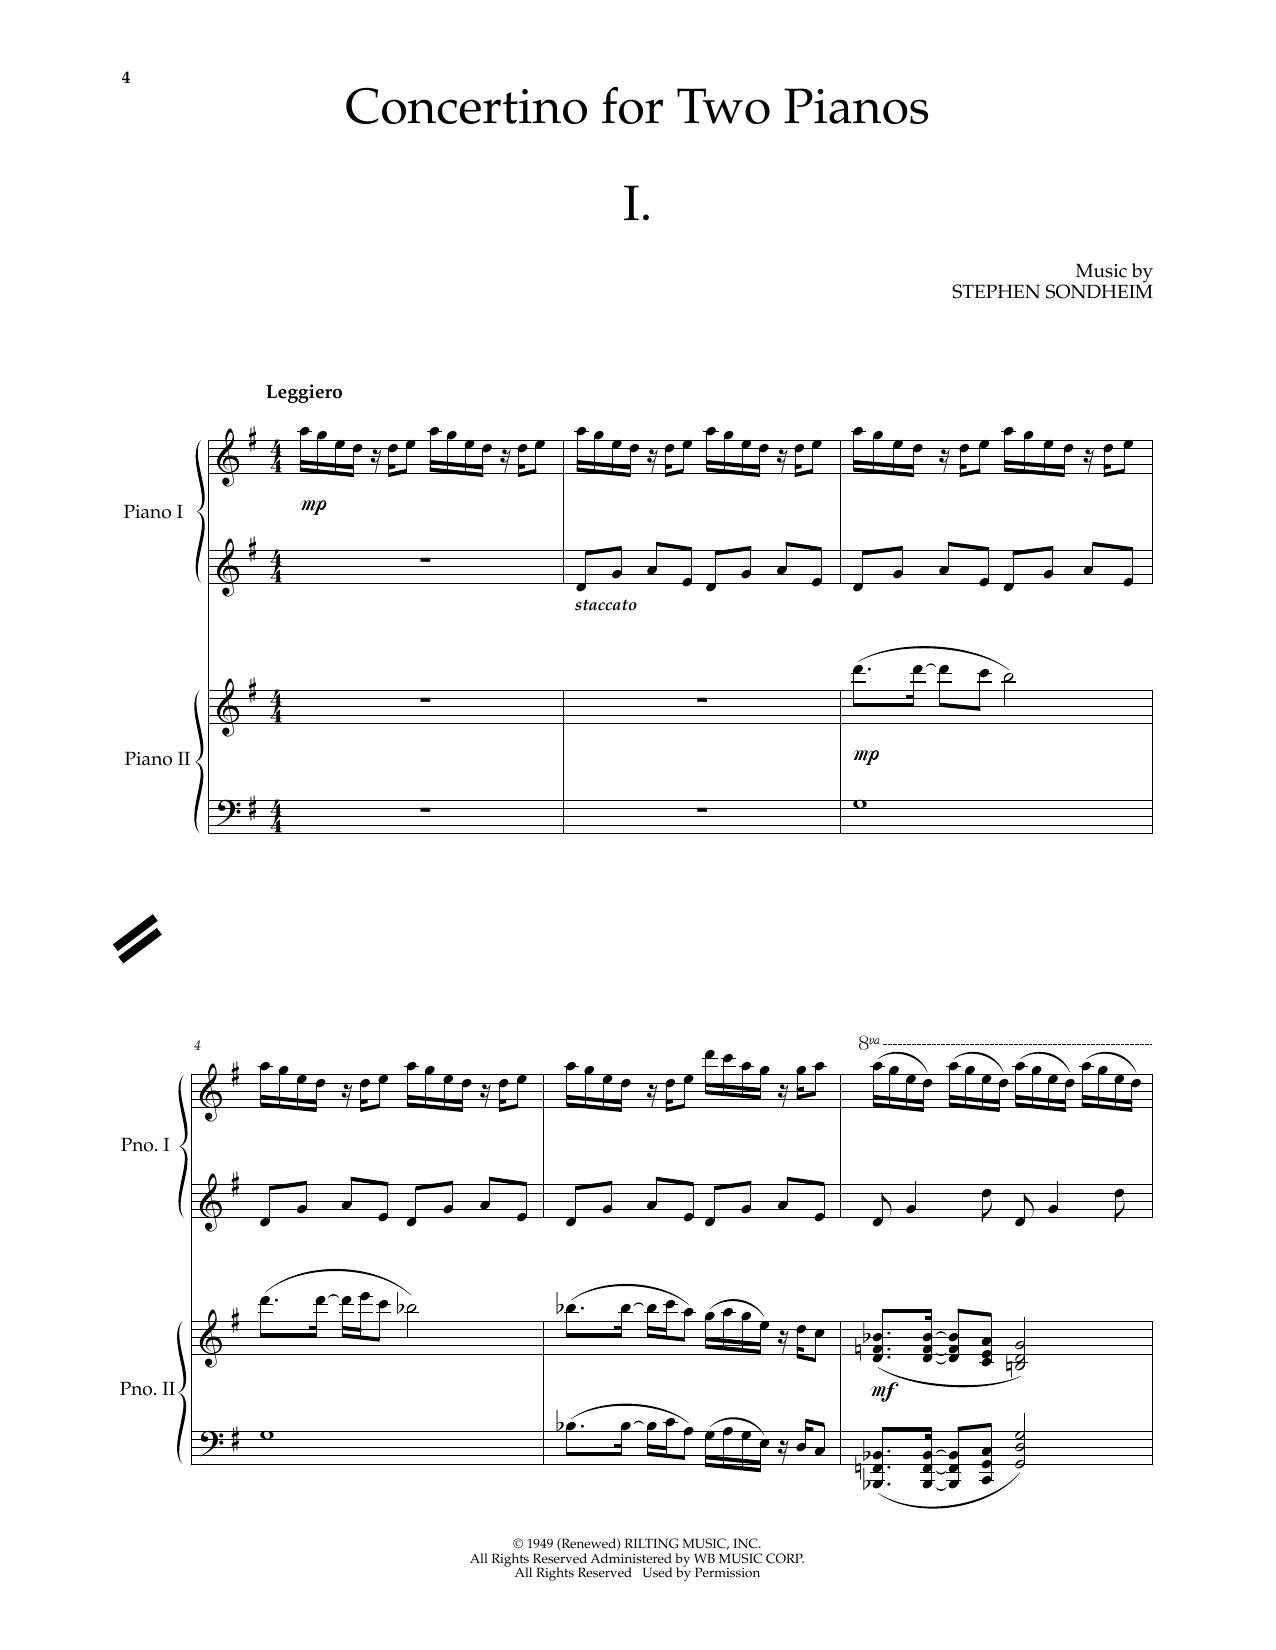 Concertino for Two Pianos - Set of Two Copies by Stephen Sondheim